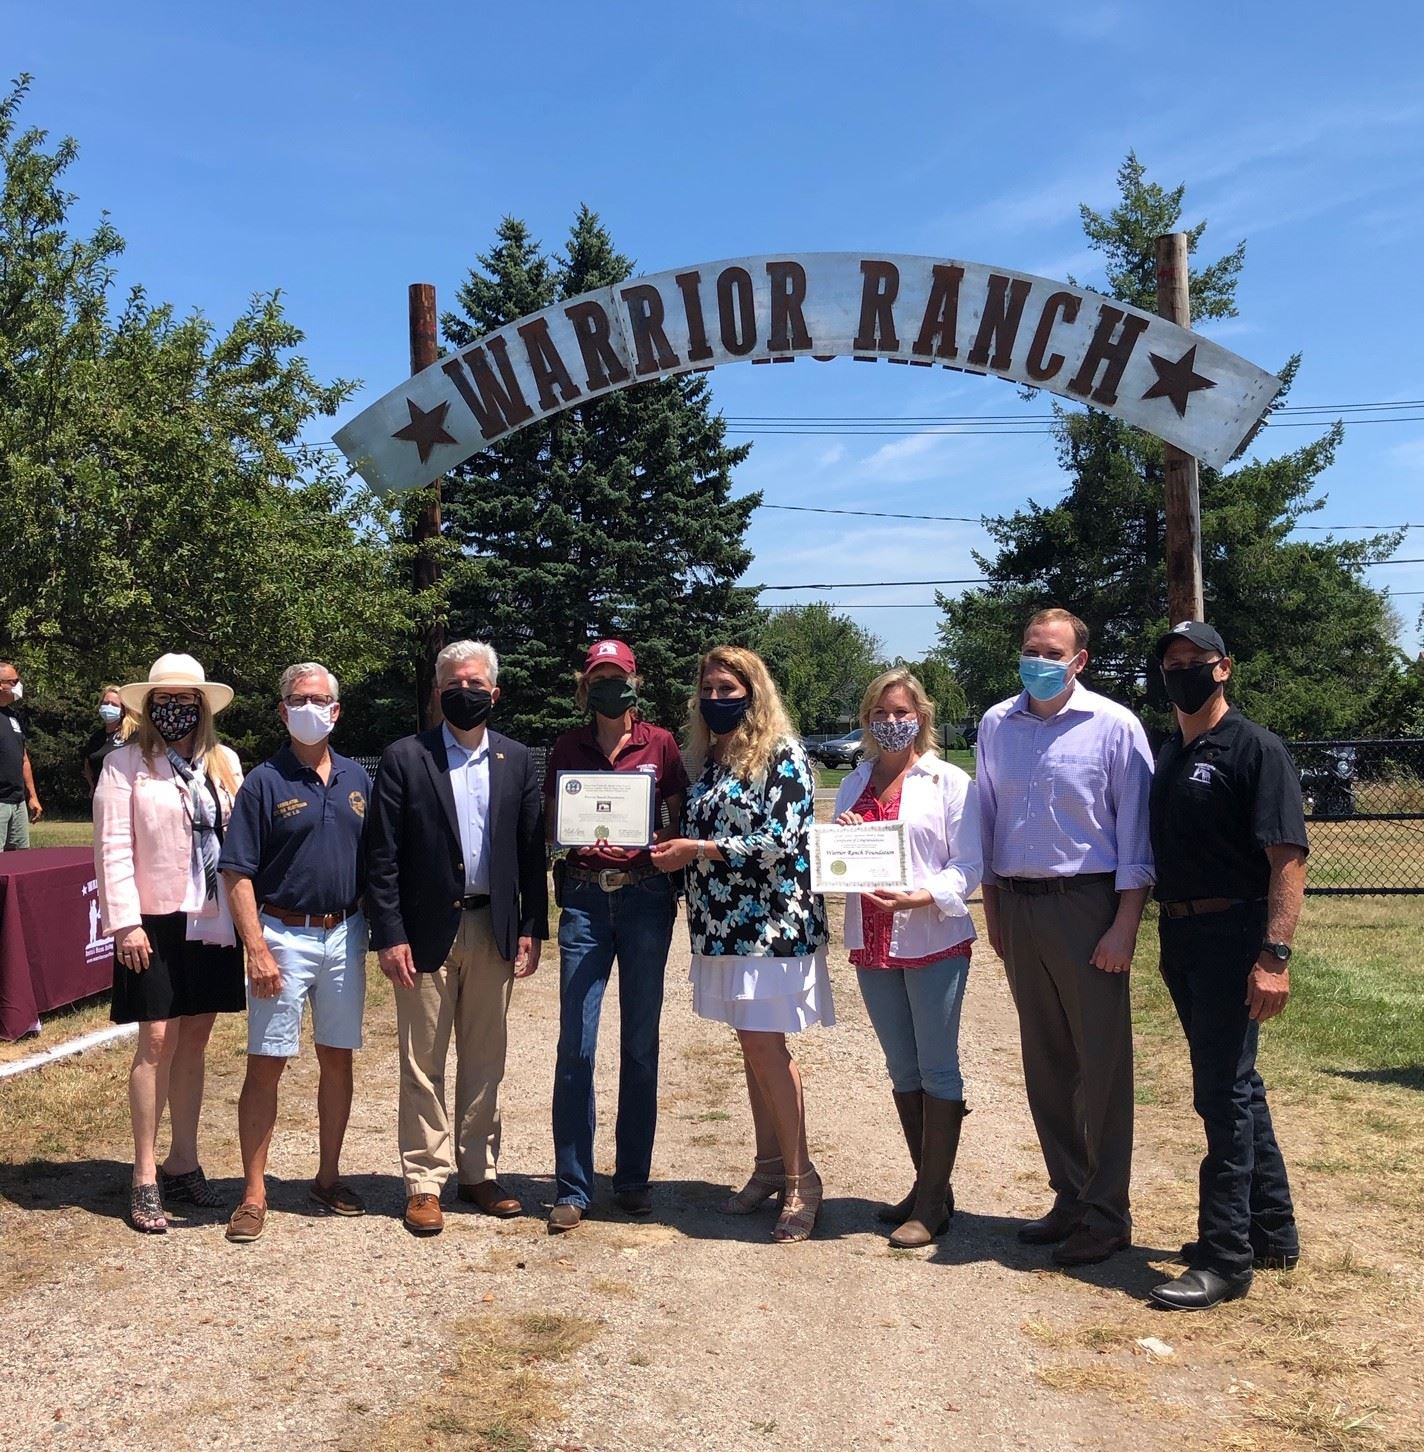 Warrior Ranch Foundation